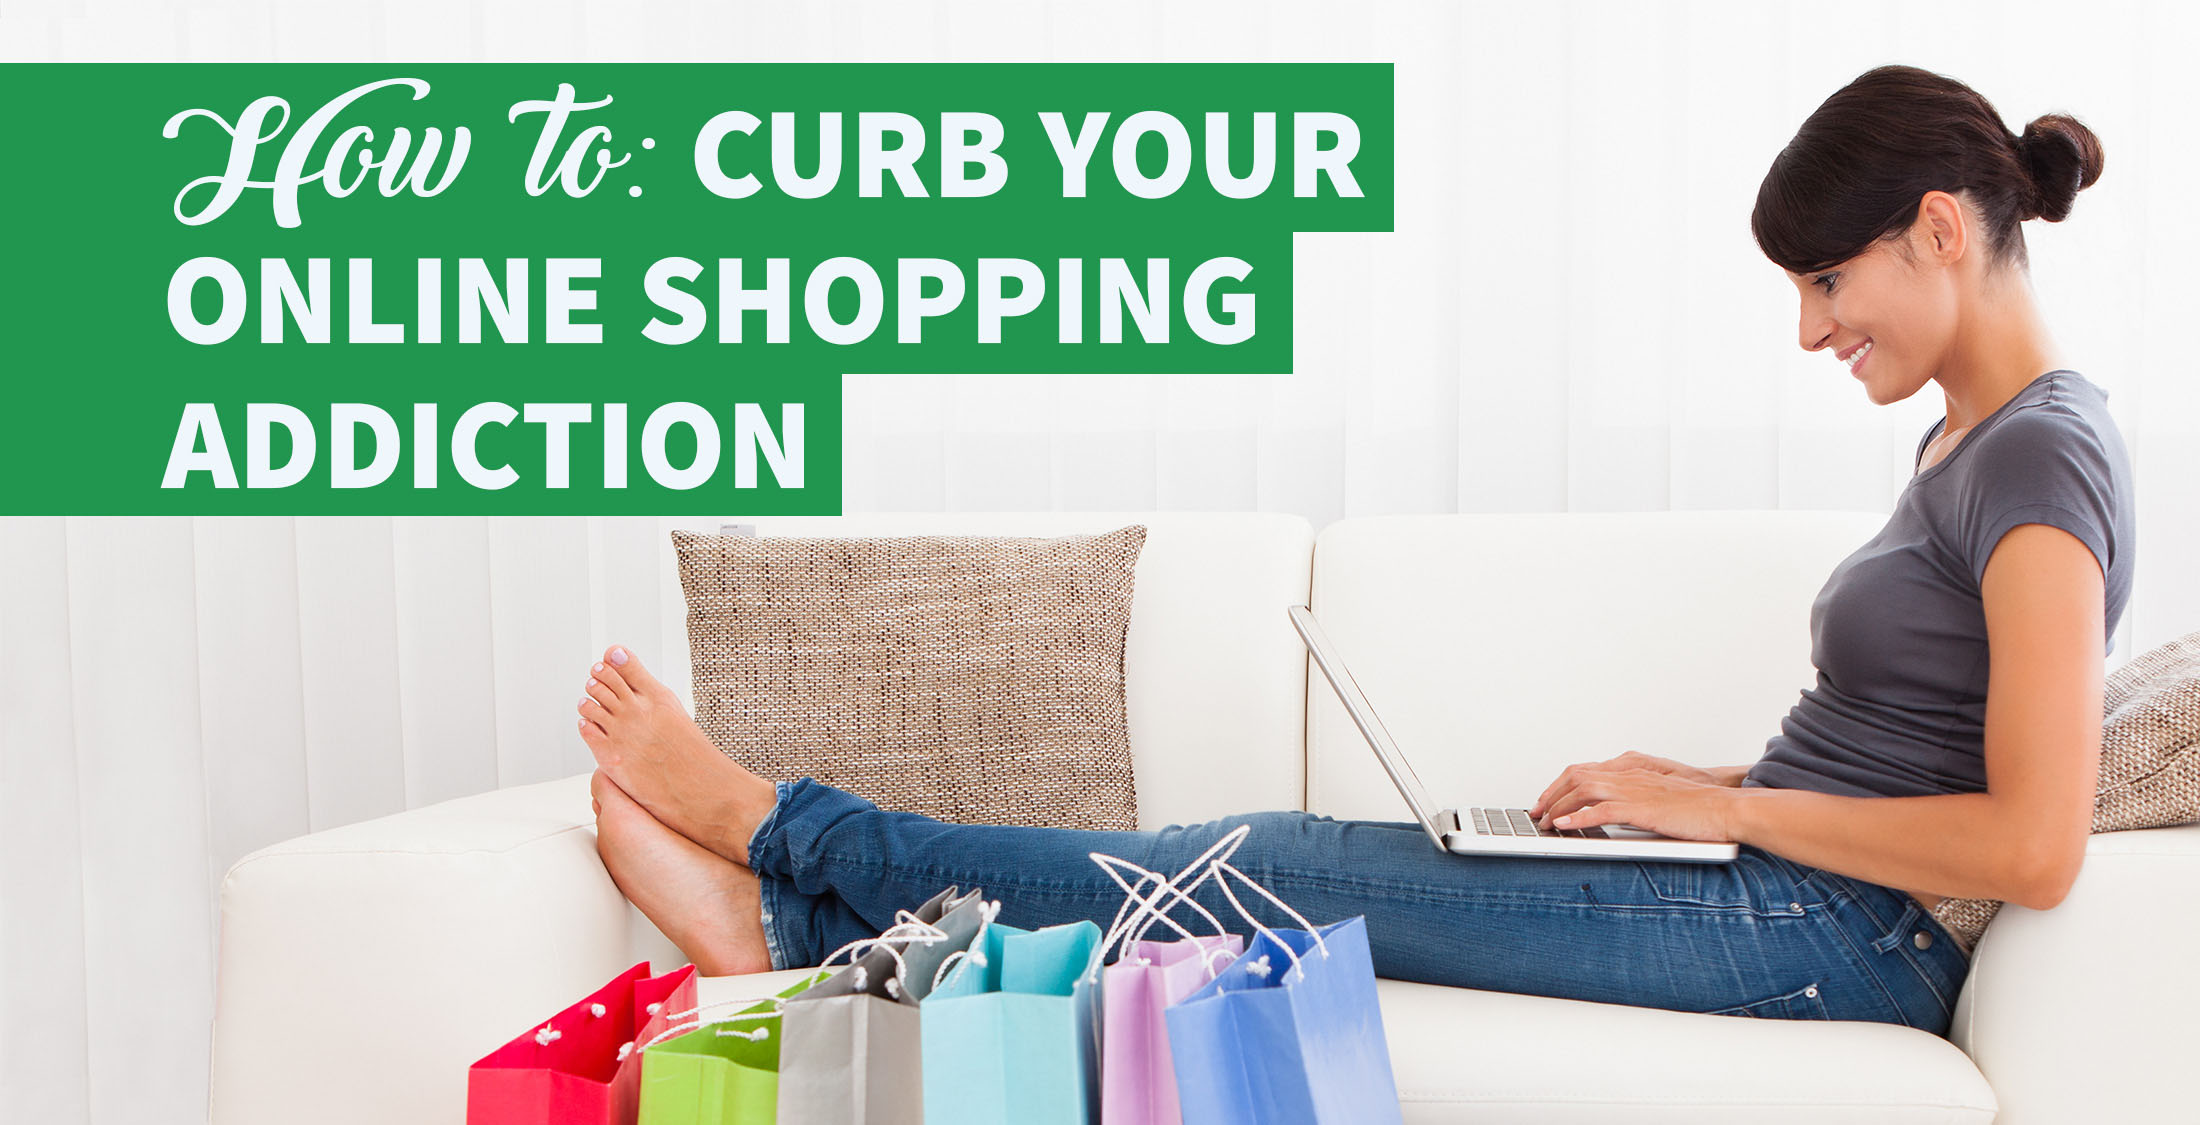 Tricks to Curb Your Online Shopping Addiction